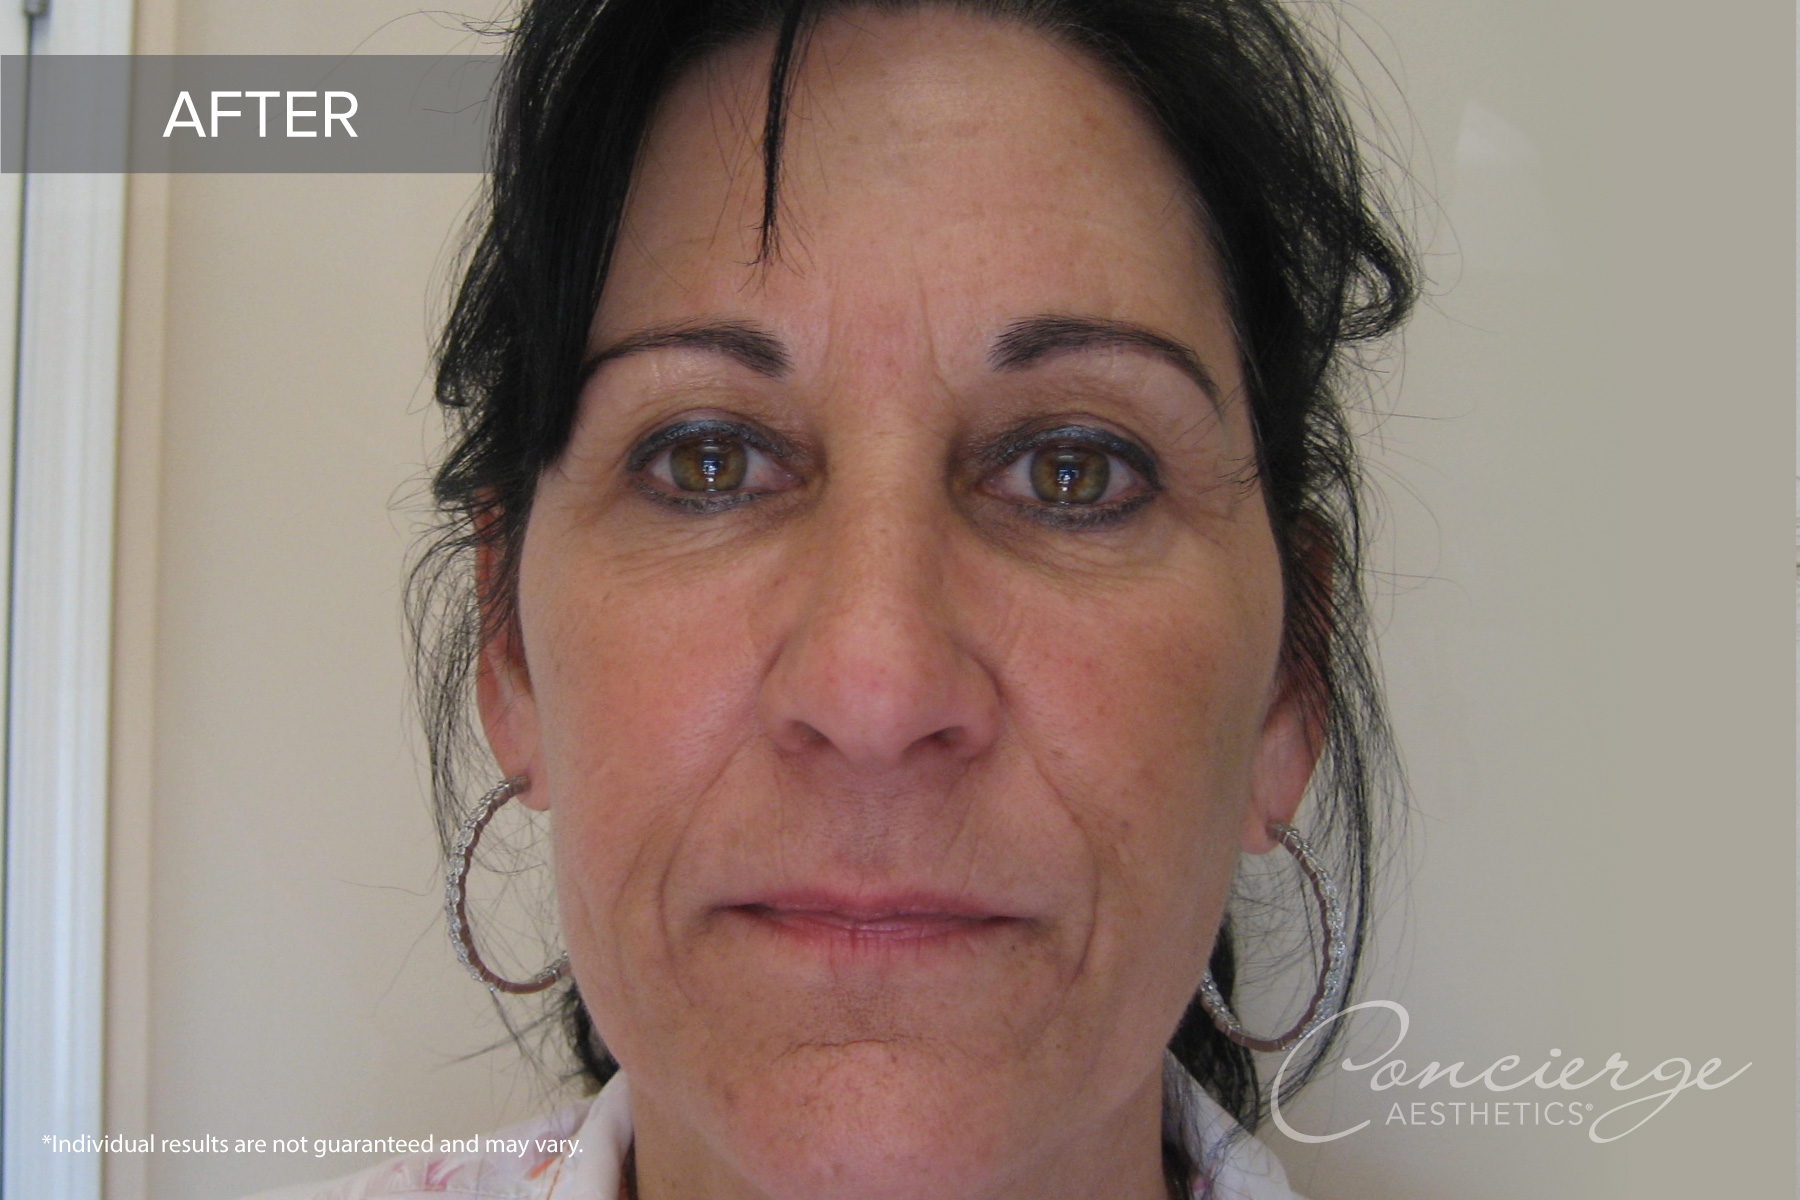 Juvederm and Botox Cosmetic - Before and After Photos